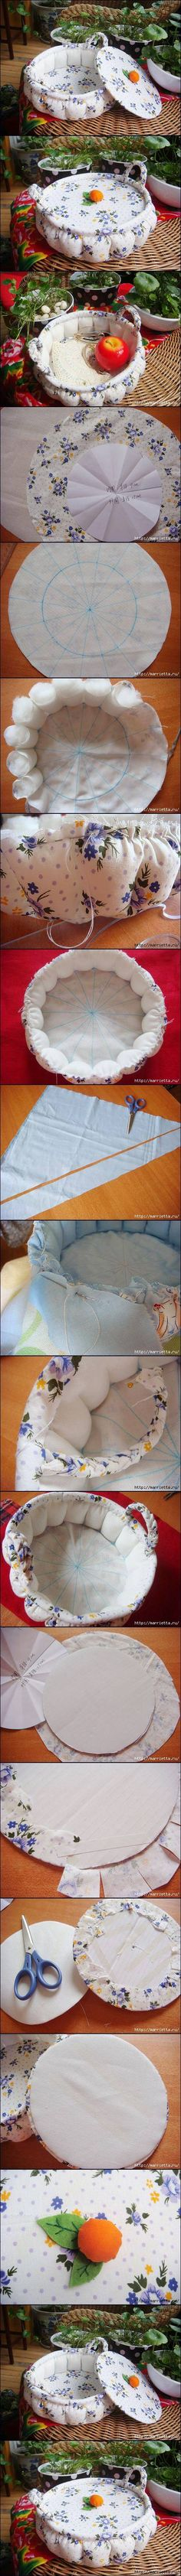 DIY Soft Fabric Needlework Basket